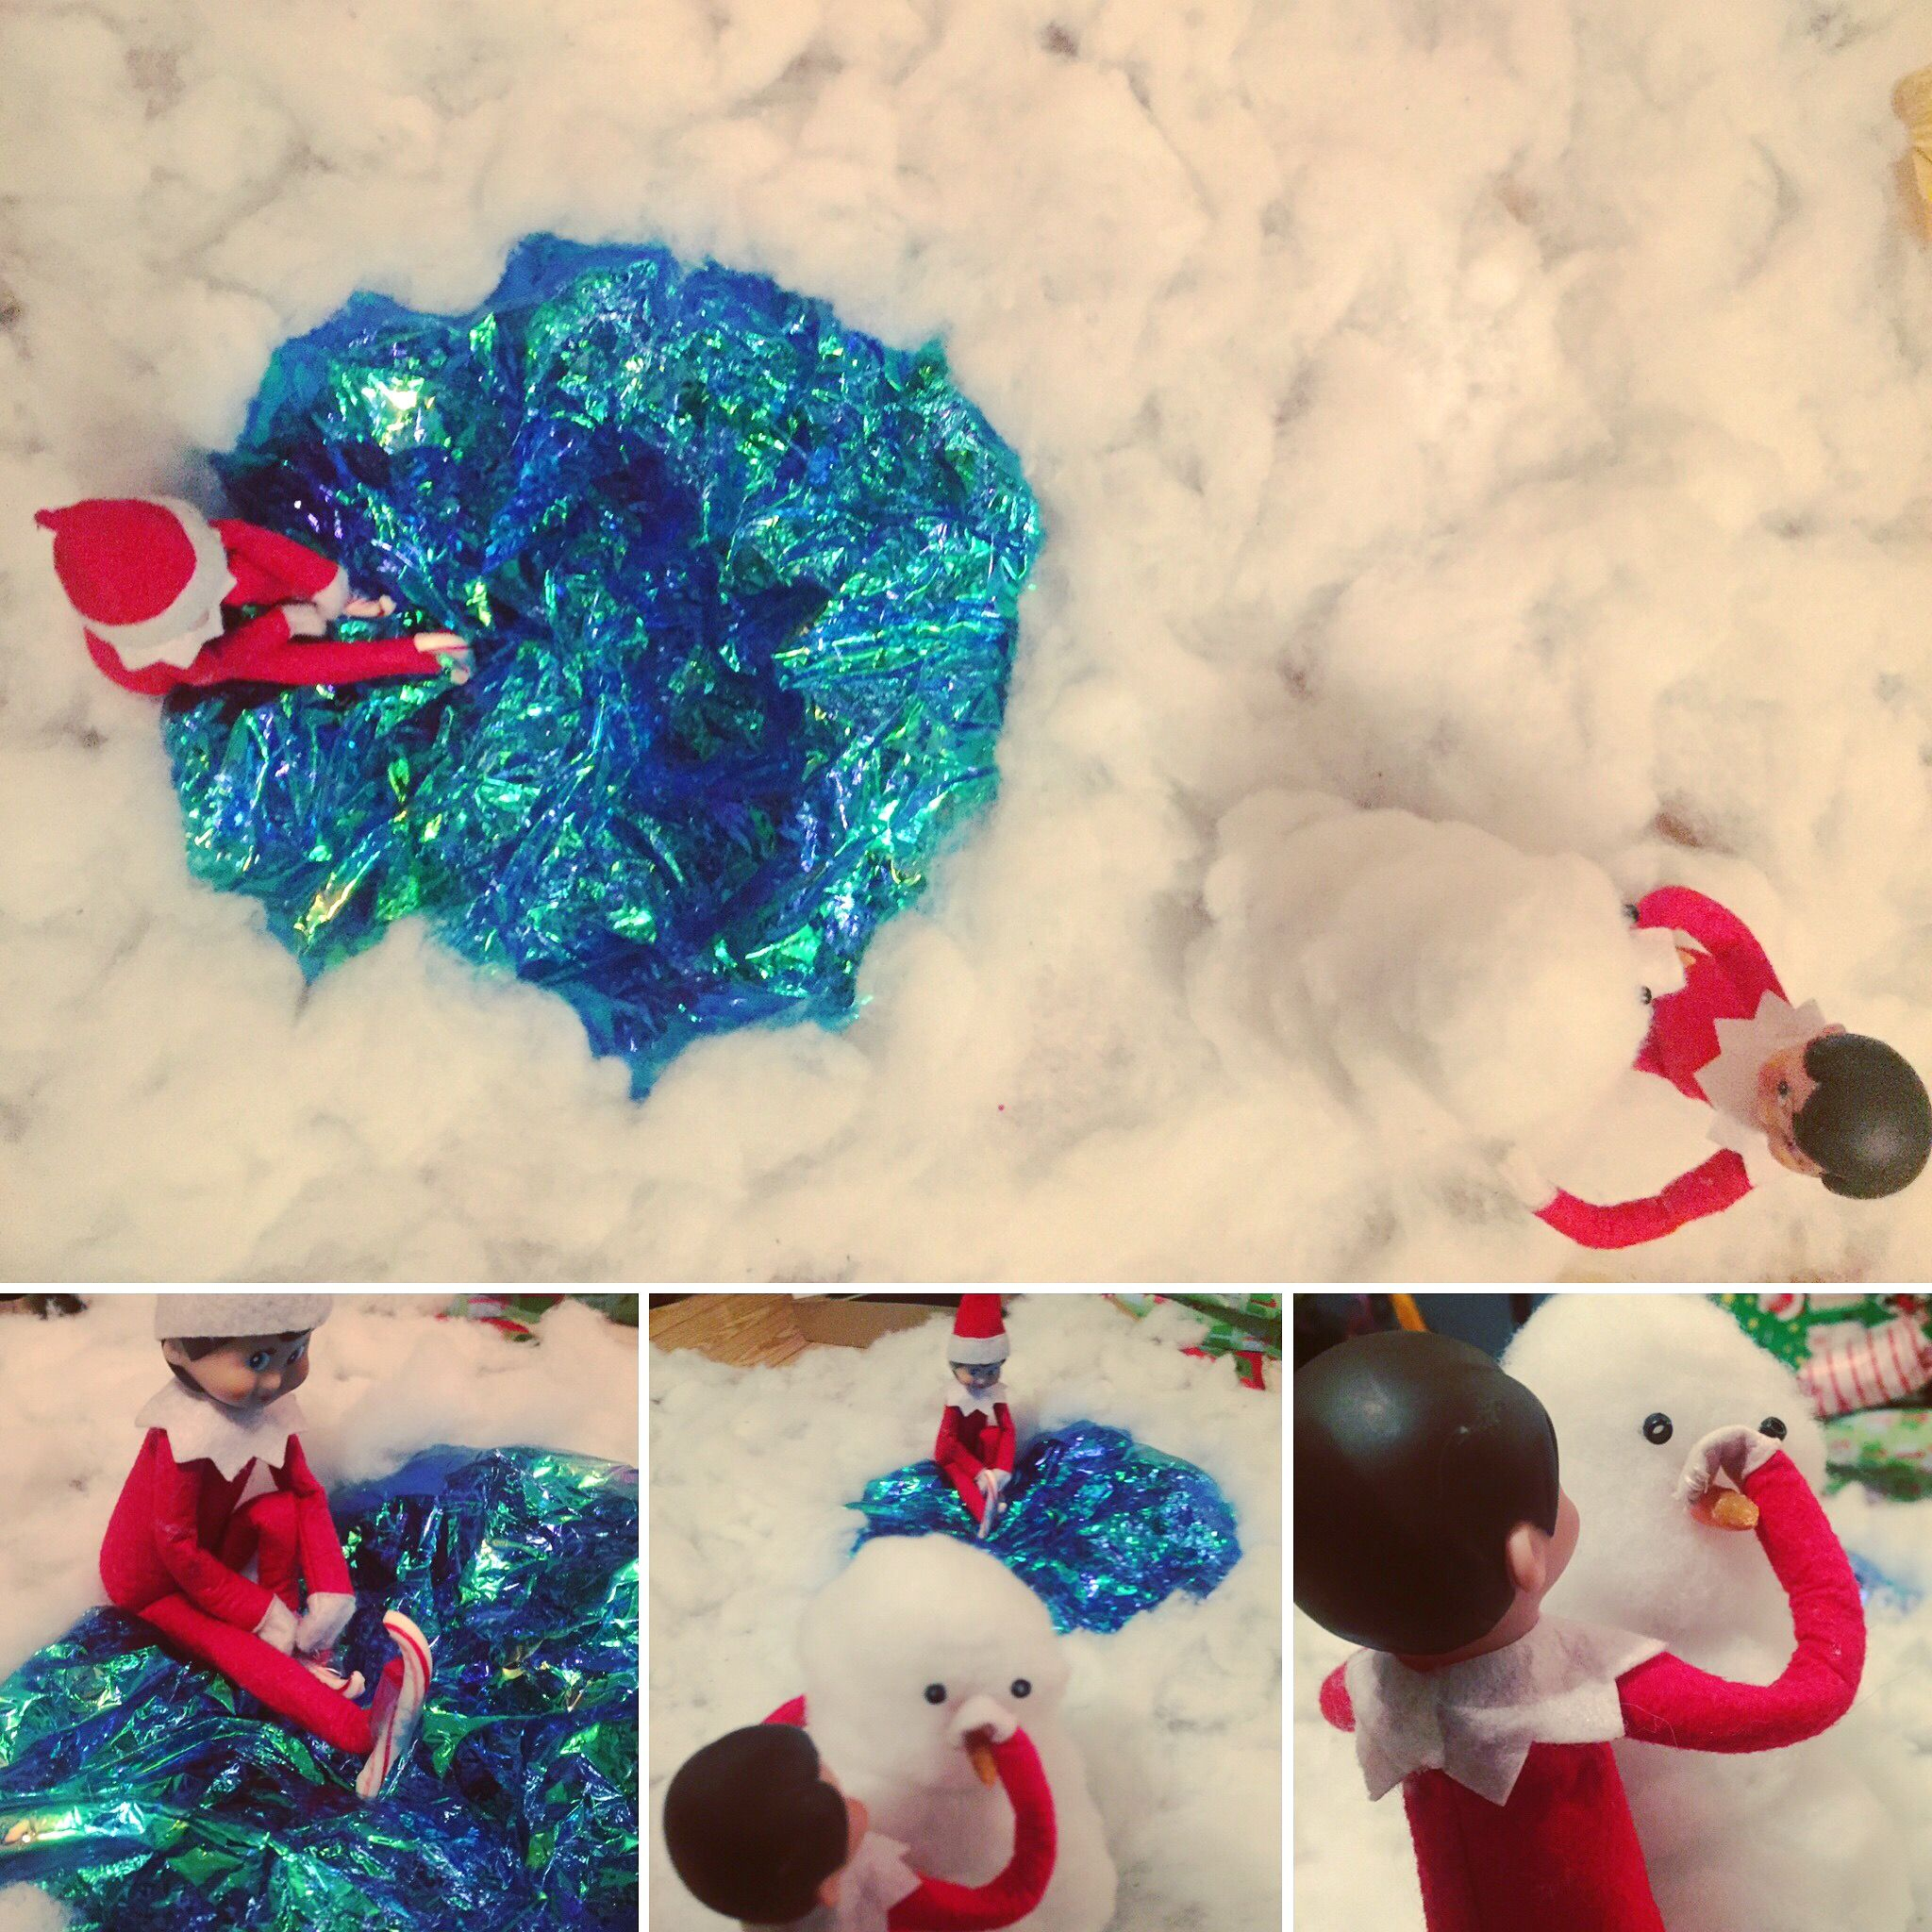 Elf on the shelf couple indulge in outdoor activities Ice skating